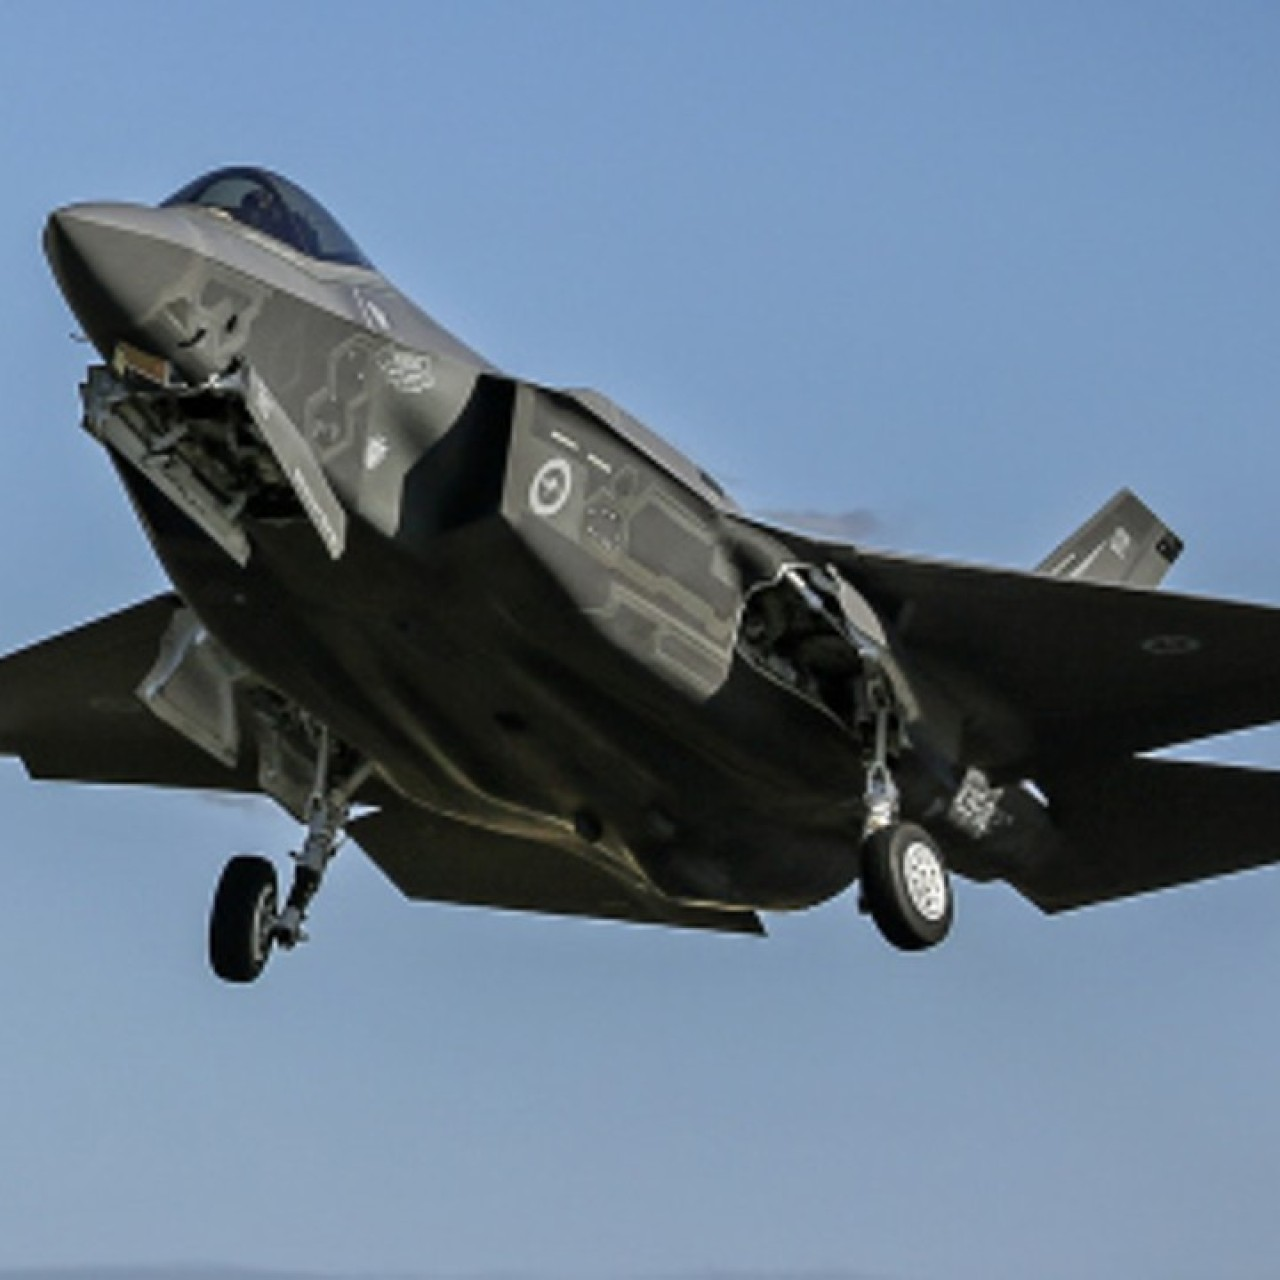 hackers use china chopper tool to steal australia f 35 stealth fighter data from defence firm south china morning post [ 1280 x 1280 Pixel ]